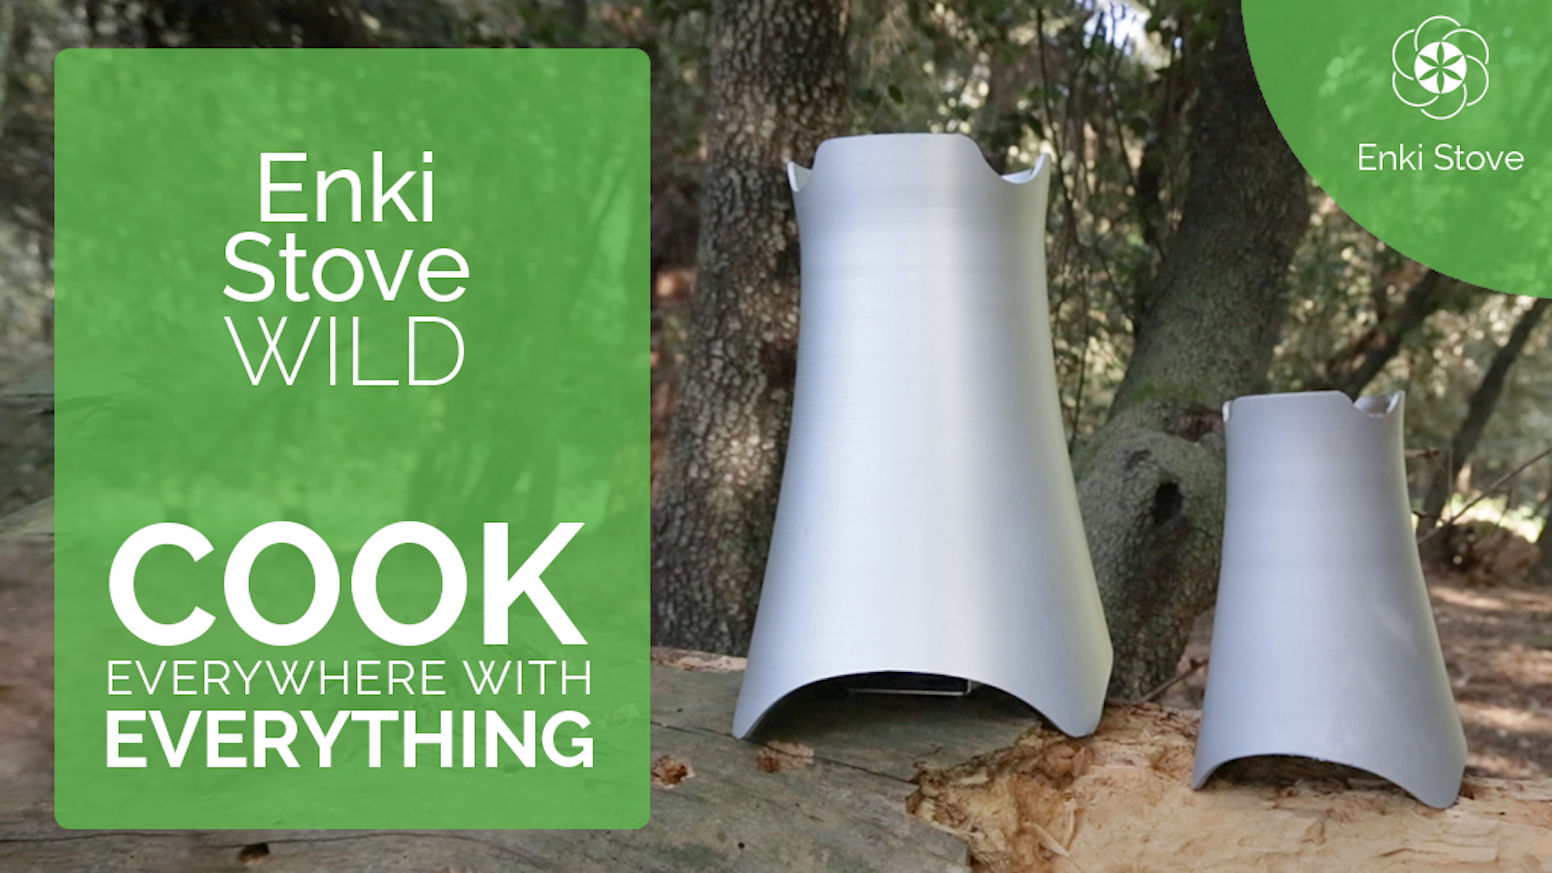 Enki Stove Wild is a revolutionary camp stove which can let you cook and grill as a pro using everything you can find in nature